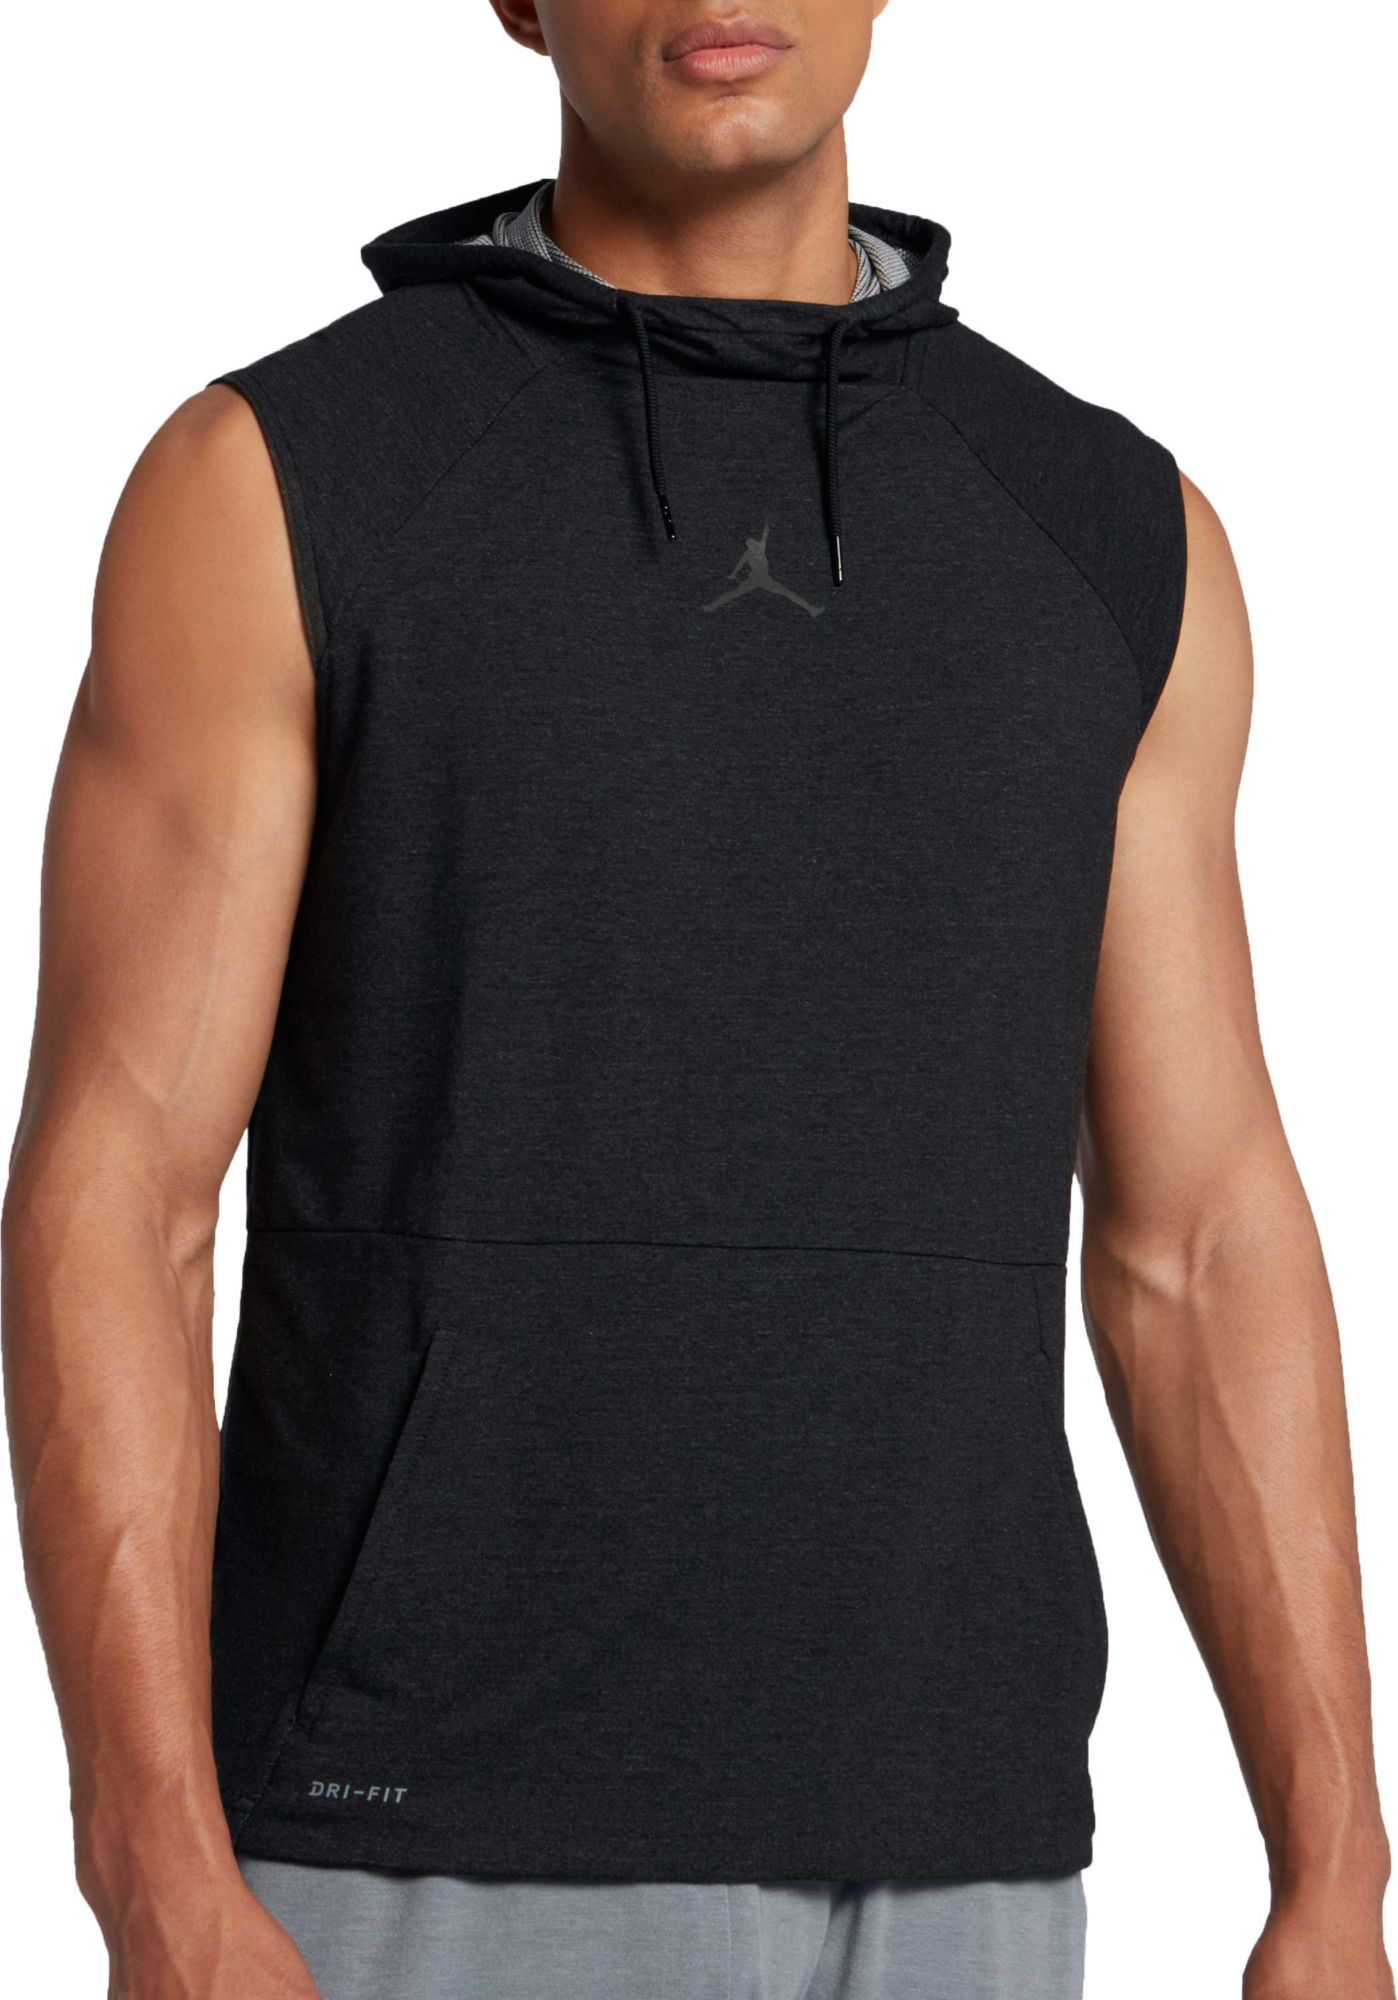 Description Our sleeveless, stringer hoodies are the most unique bodybuilding apparel yet. Make a statement in the gym with our one-of-a-kind sleeveless stringer hoodies.